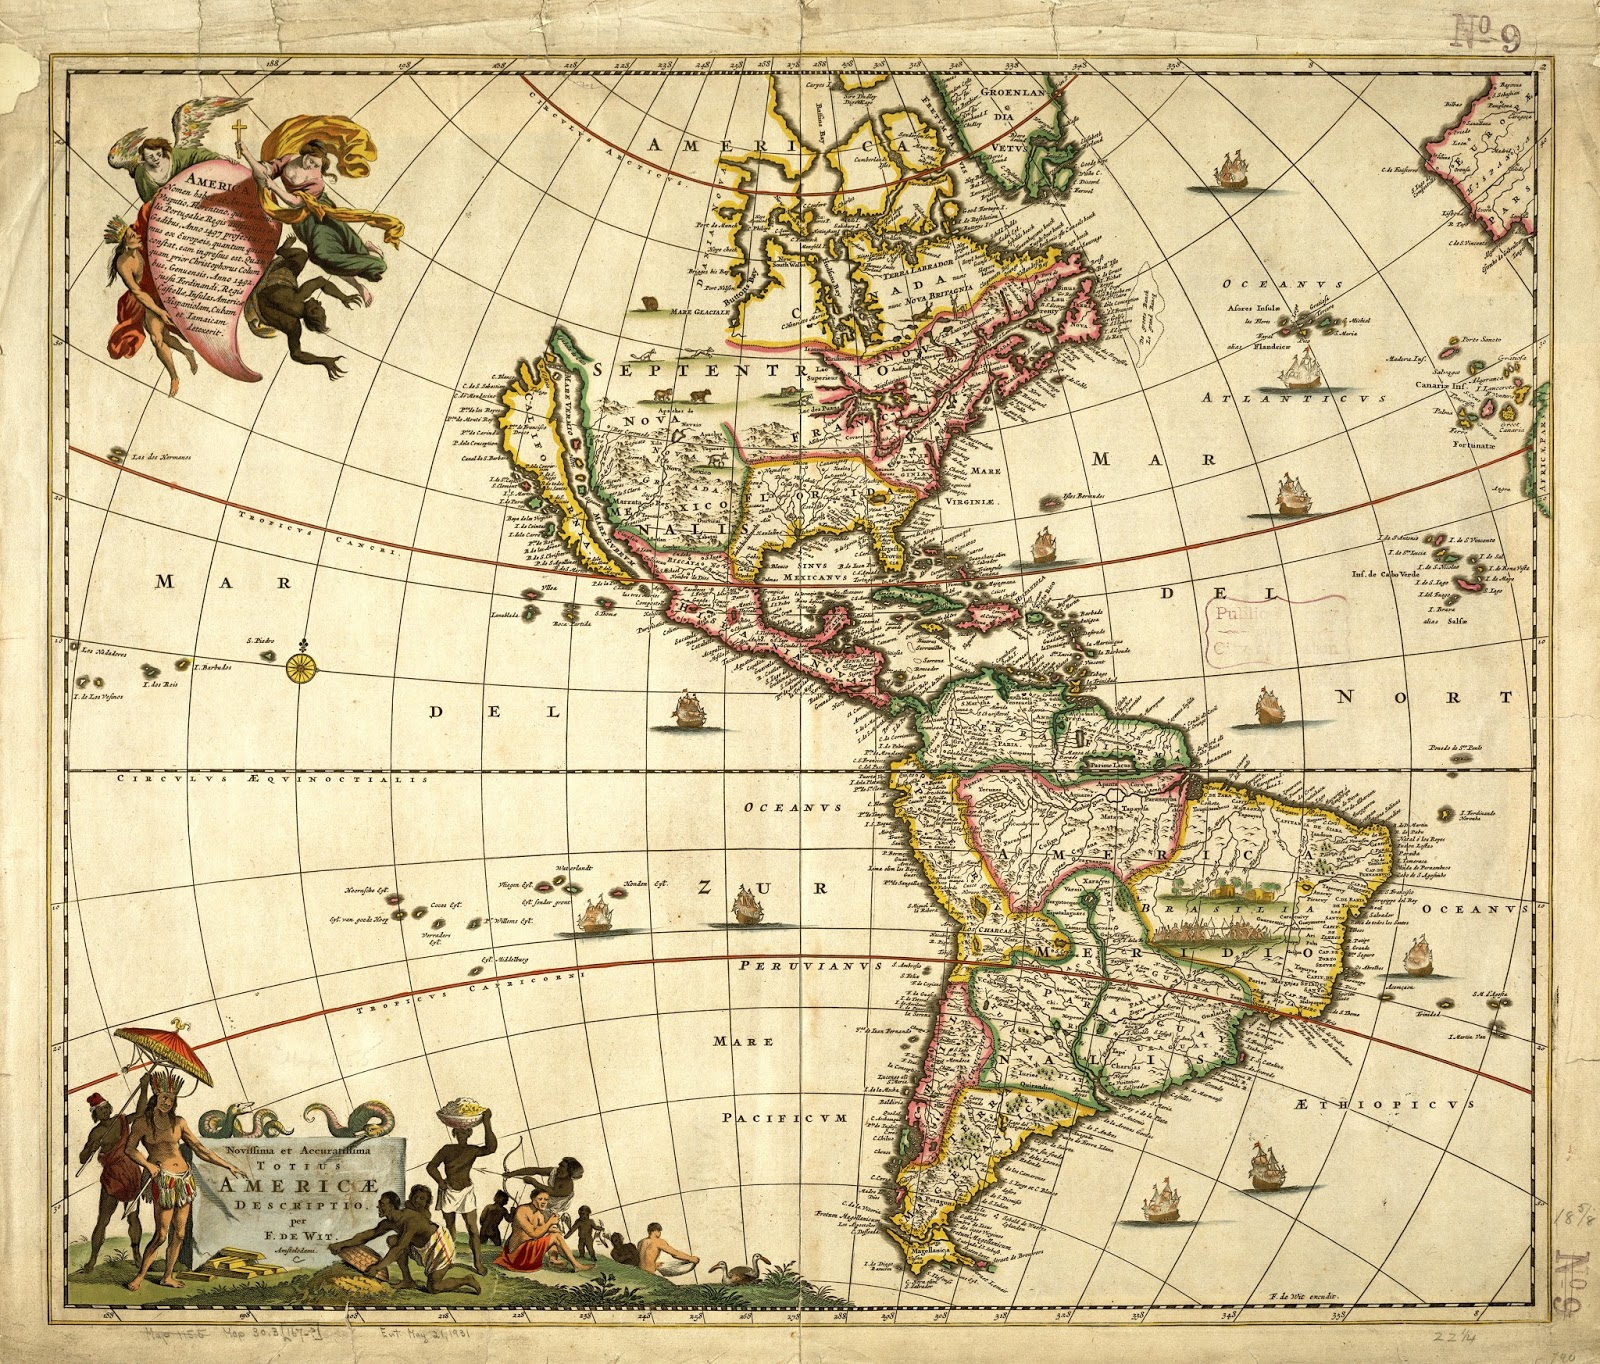 Map of the Americas by Frederik de Wit (1610)